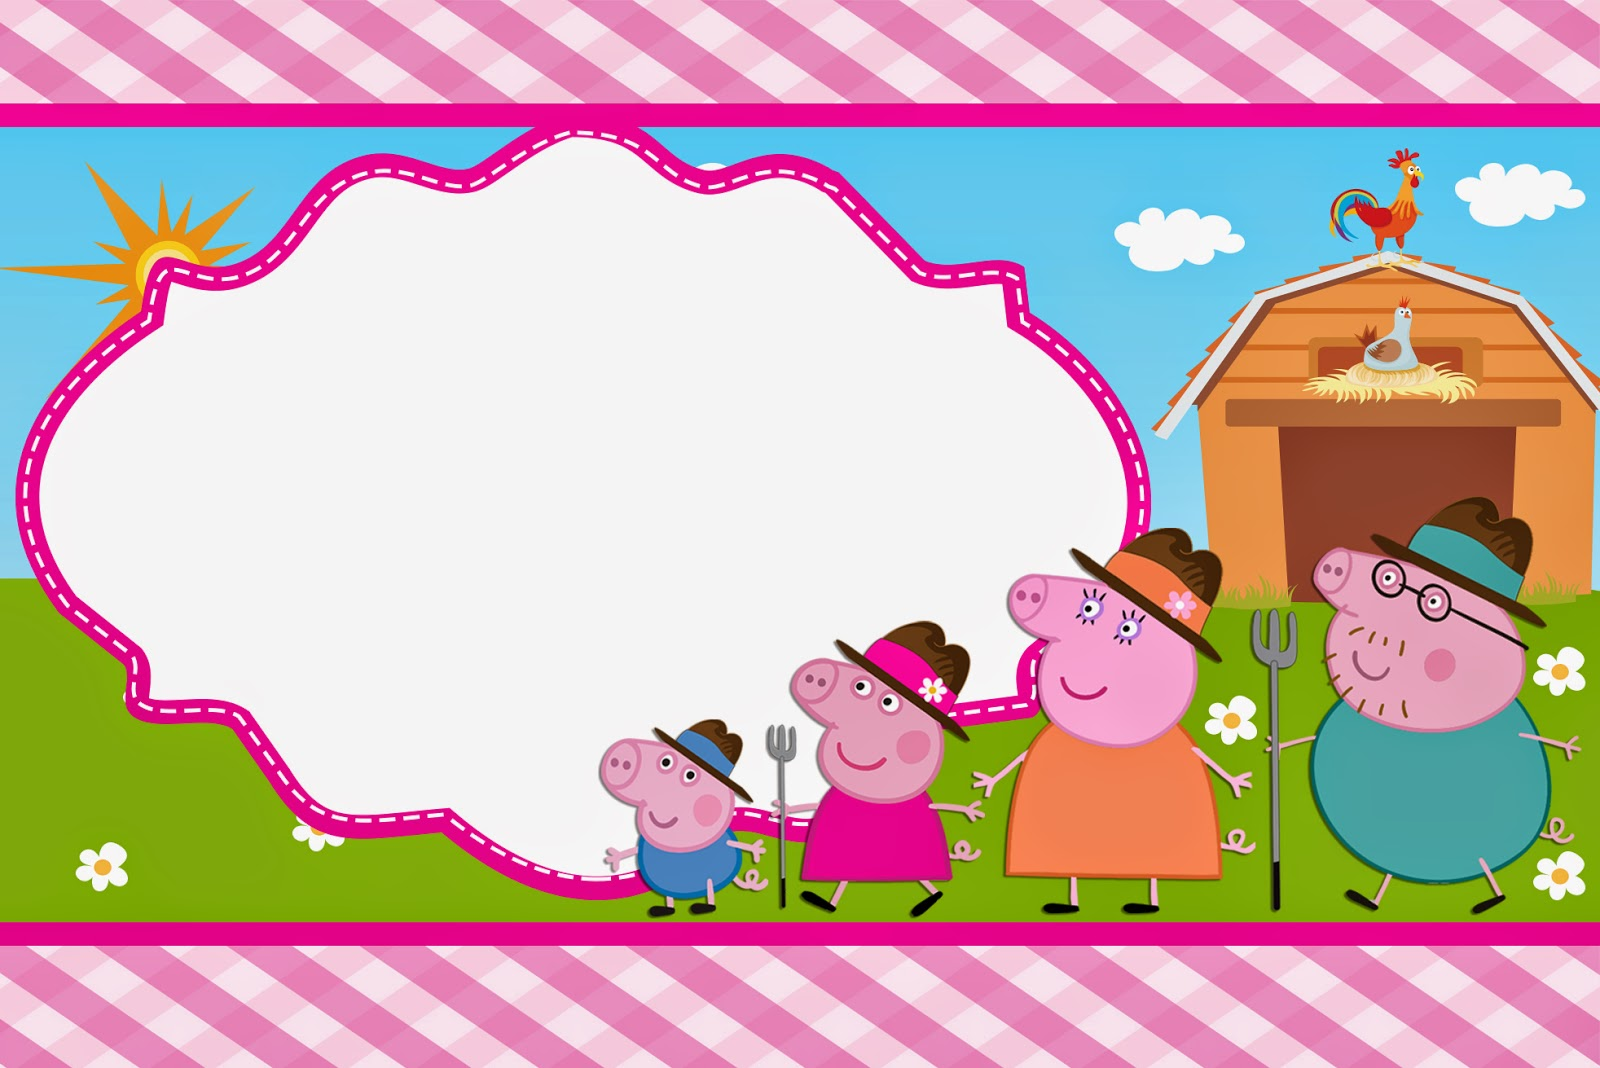 Peppa Pig At The Farm Free Printable Invitations Oh My Fiesta